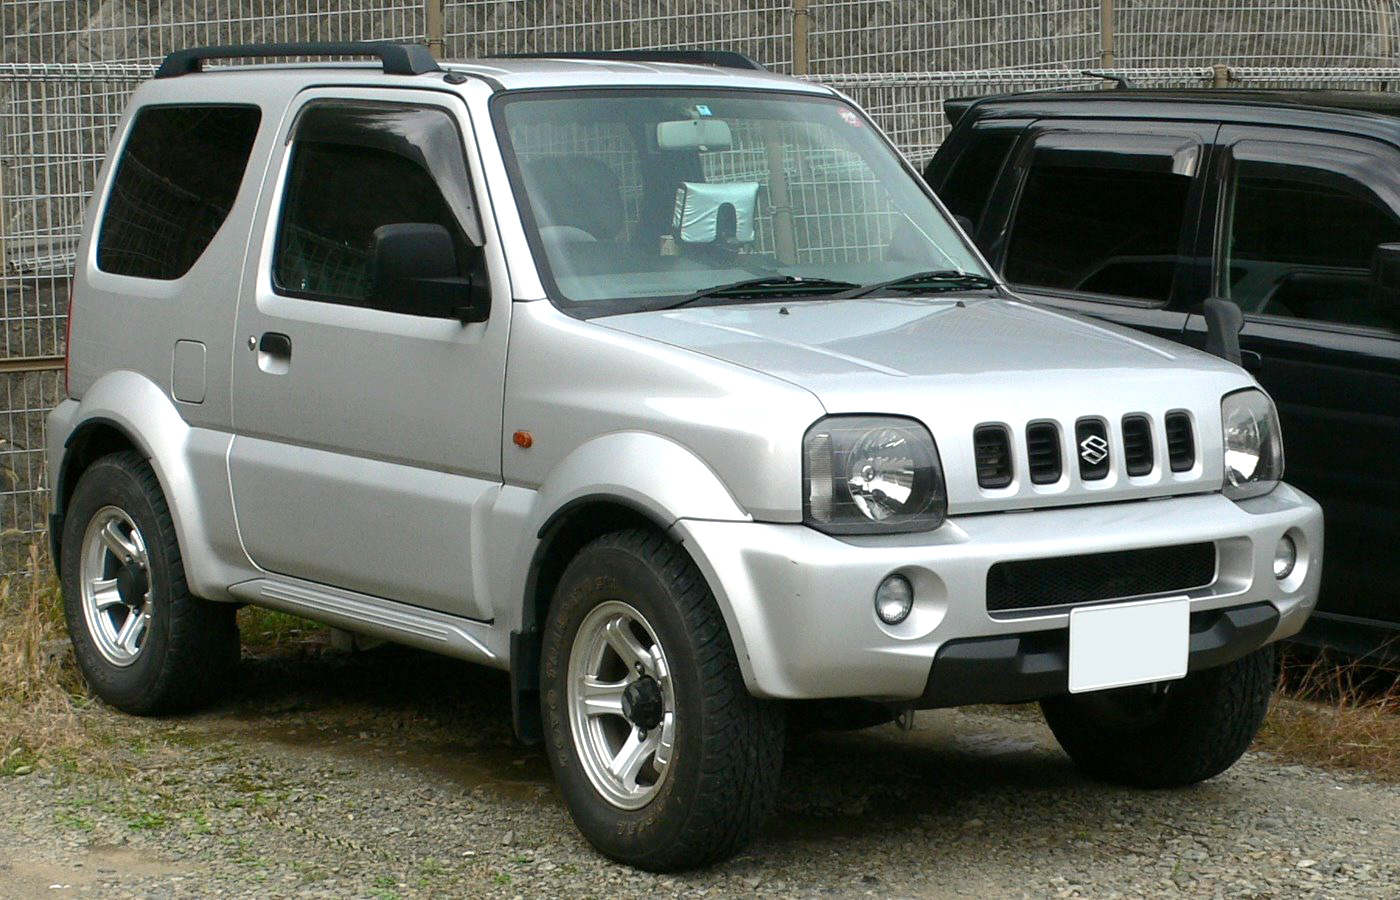 suzuki jimny wikipedia. Black Bedroom Furniture Sets. Home Design Ideas